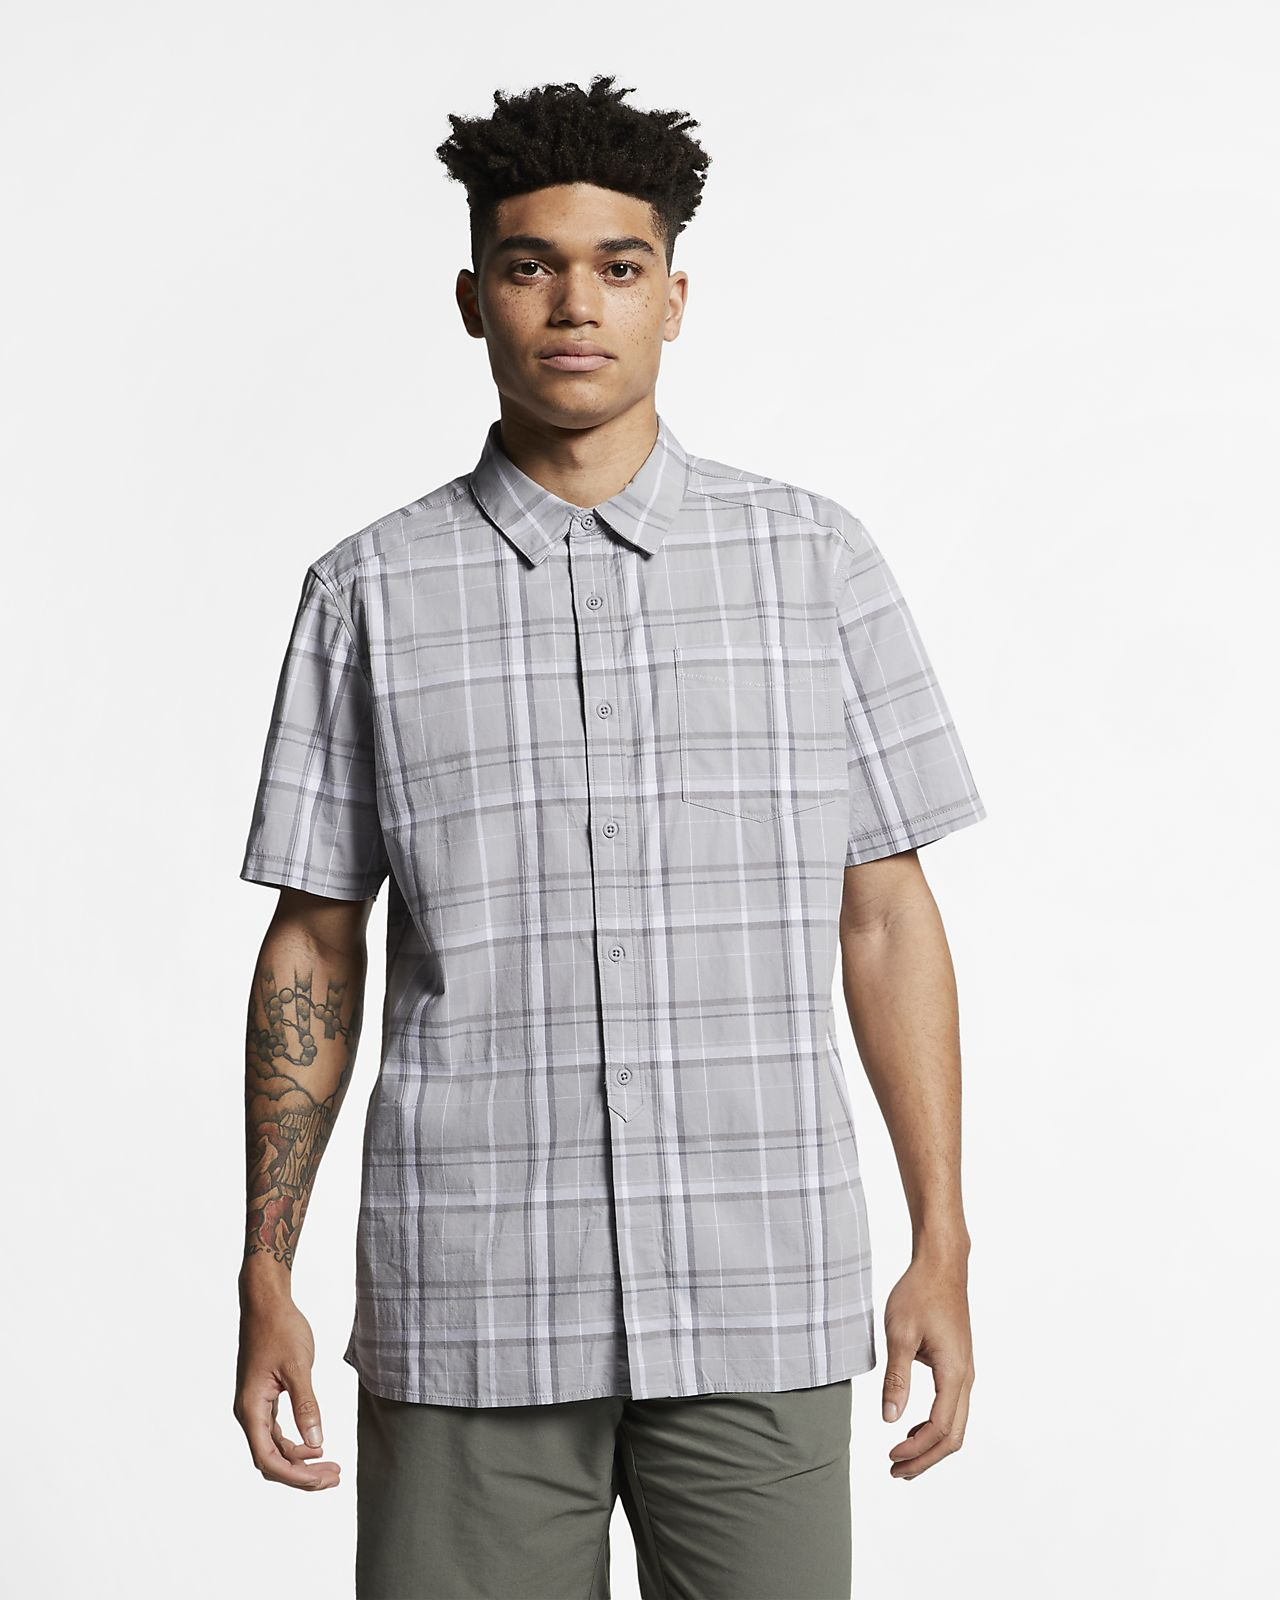 Hurley Frankie Stretch Men's Short-Sleeve Top